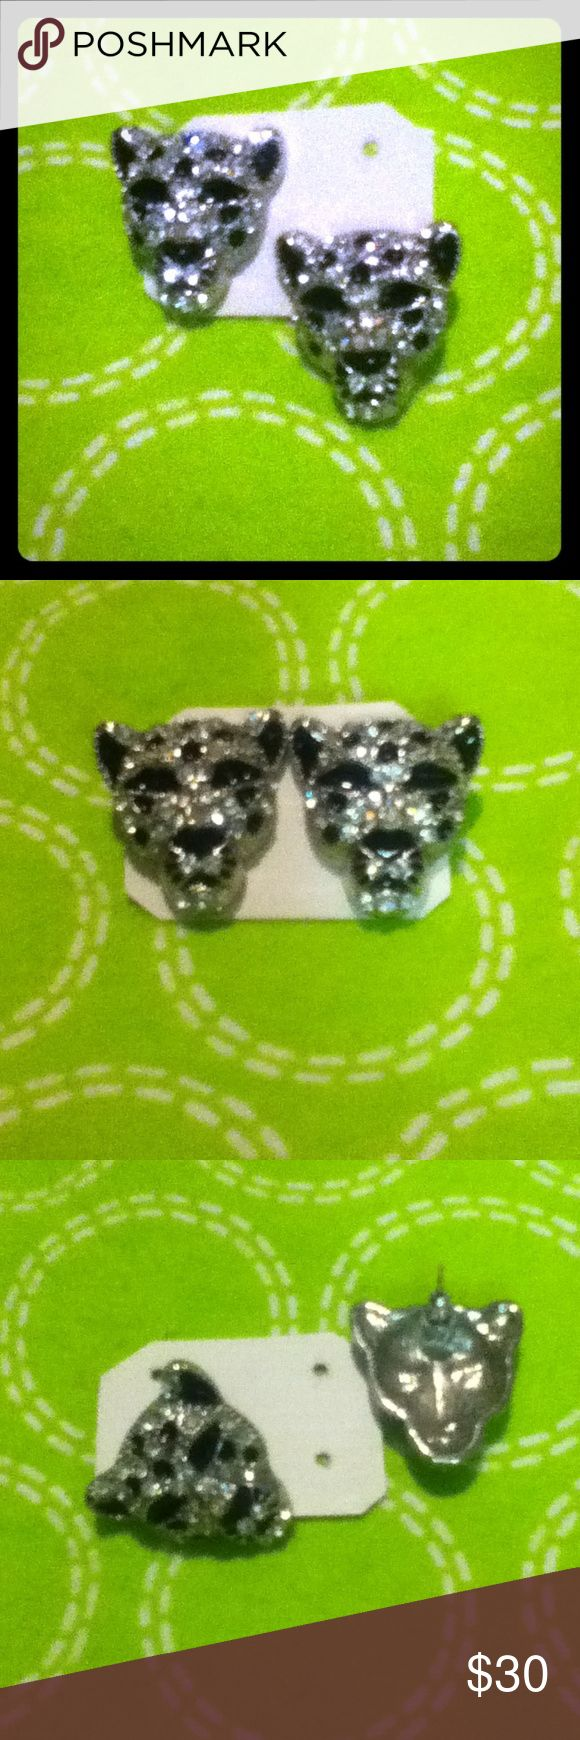 "BNWT's,CHEETAH,HEAD/stud earrings,BLACK&CRYSTALGem BNWTag's CHEETAH HEAD STERLING SLIVER Earring Studs... With BLACK Rhinestones And Crystal Gems And Diamond Cut GEMSTONES!!! They were purchased at A Mall at a Lil both "" called "" PIERCING Pagoda!!! They were $ 39.99 . Never got around to wear them!!! PIERCING Pagoda Jewelry Earrings"